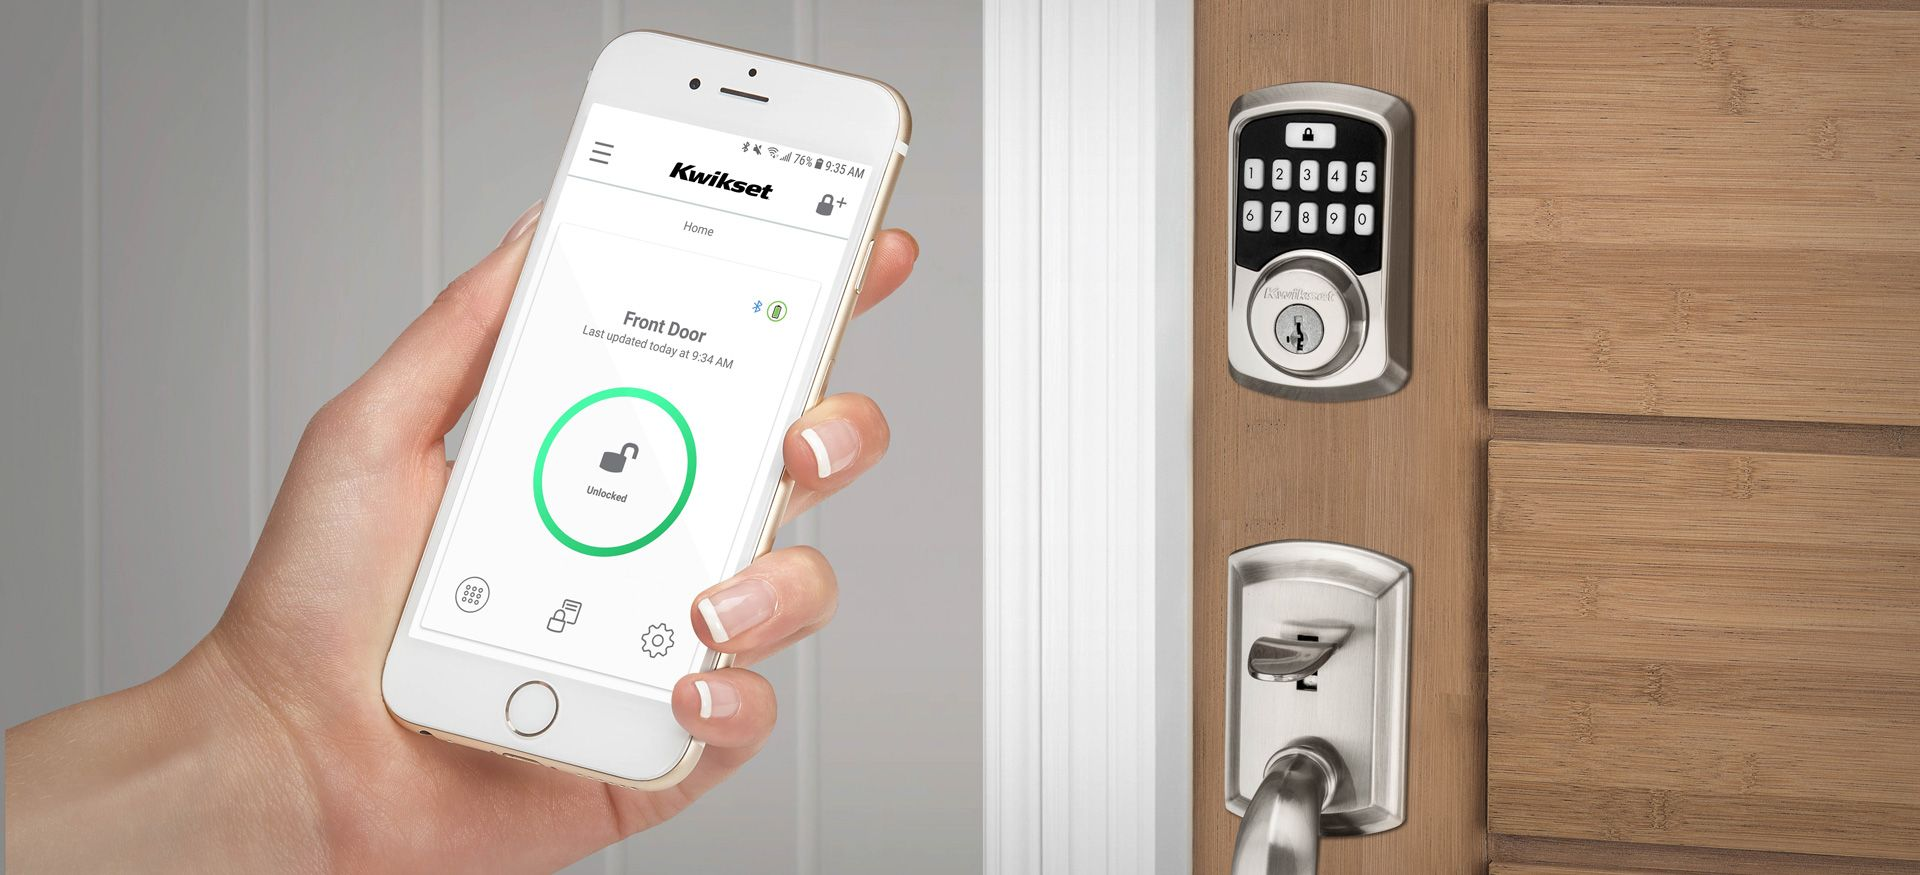 squarerooms-kwikset-kevo-smart-lock-app-phone-in-hand-remote-access-press